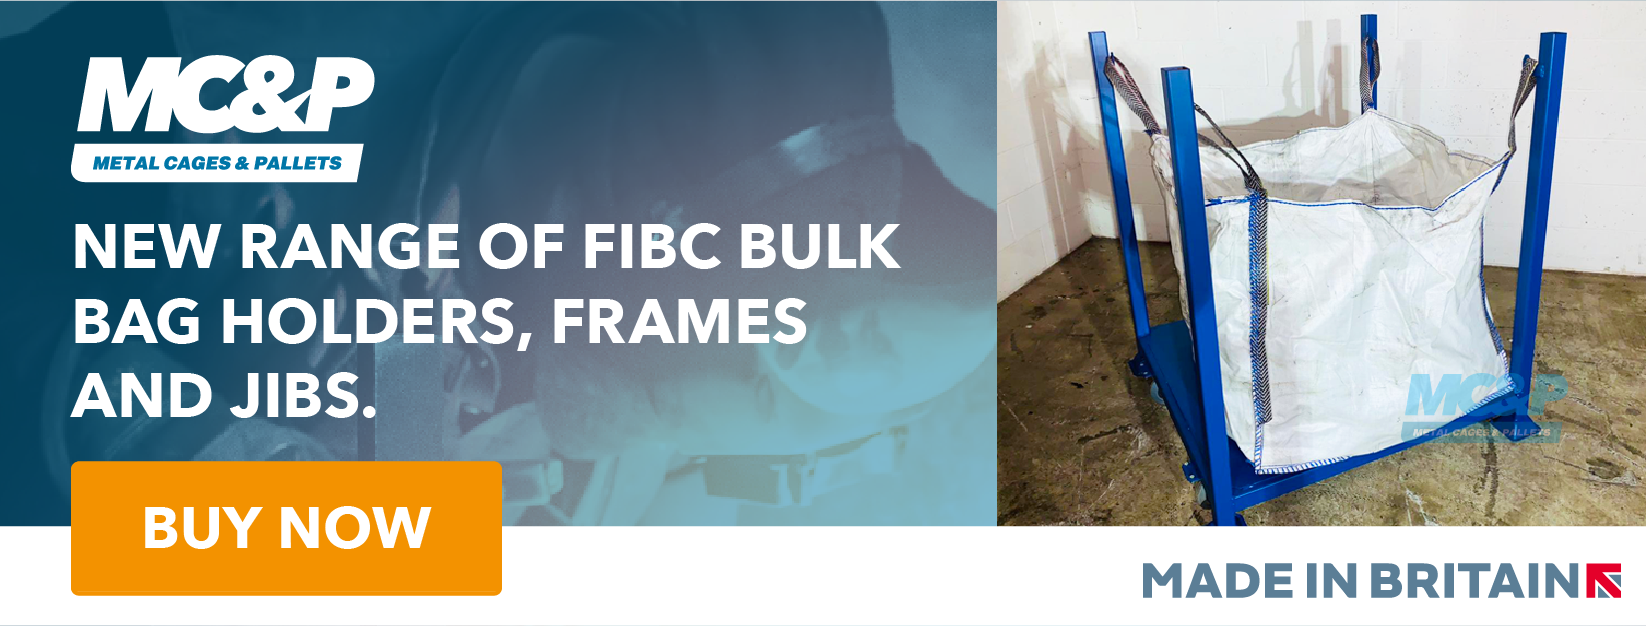 FIBC Bag Holders, Frames and Jibs - Buy Now